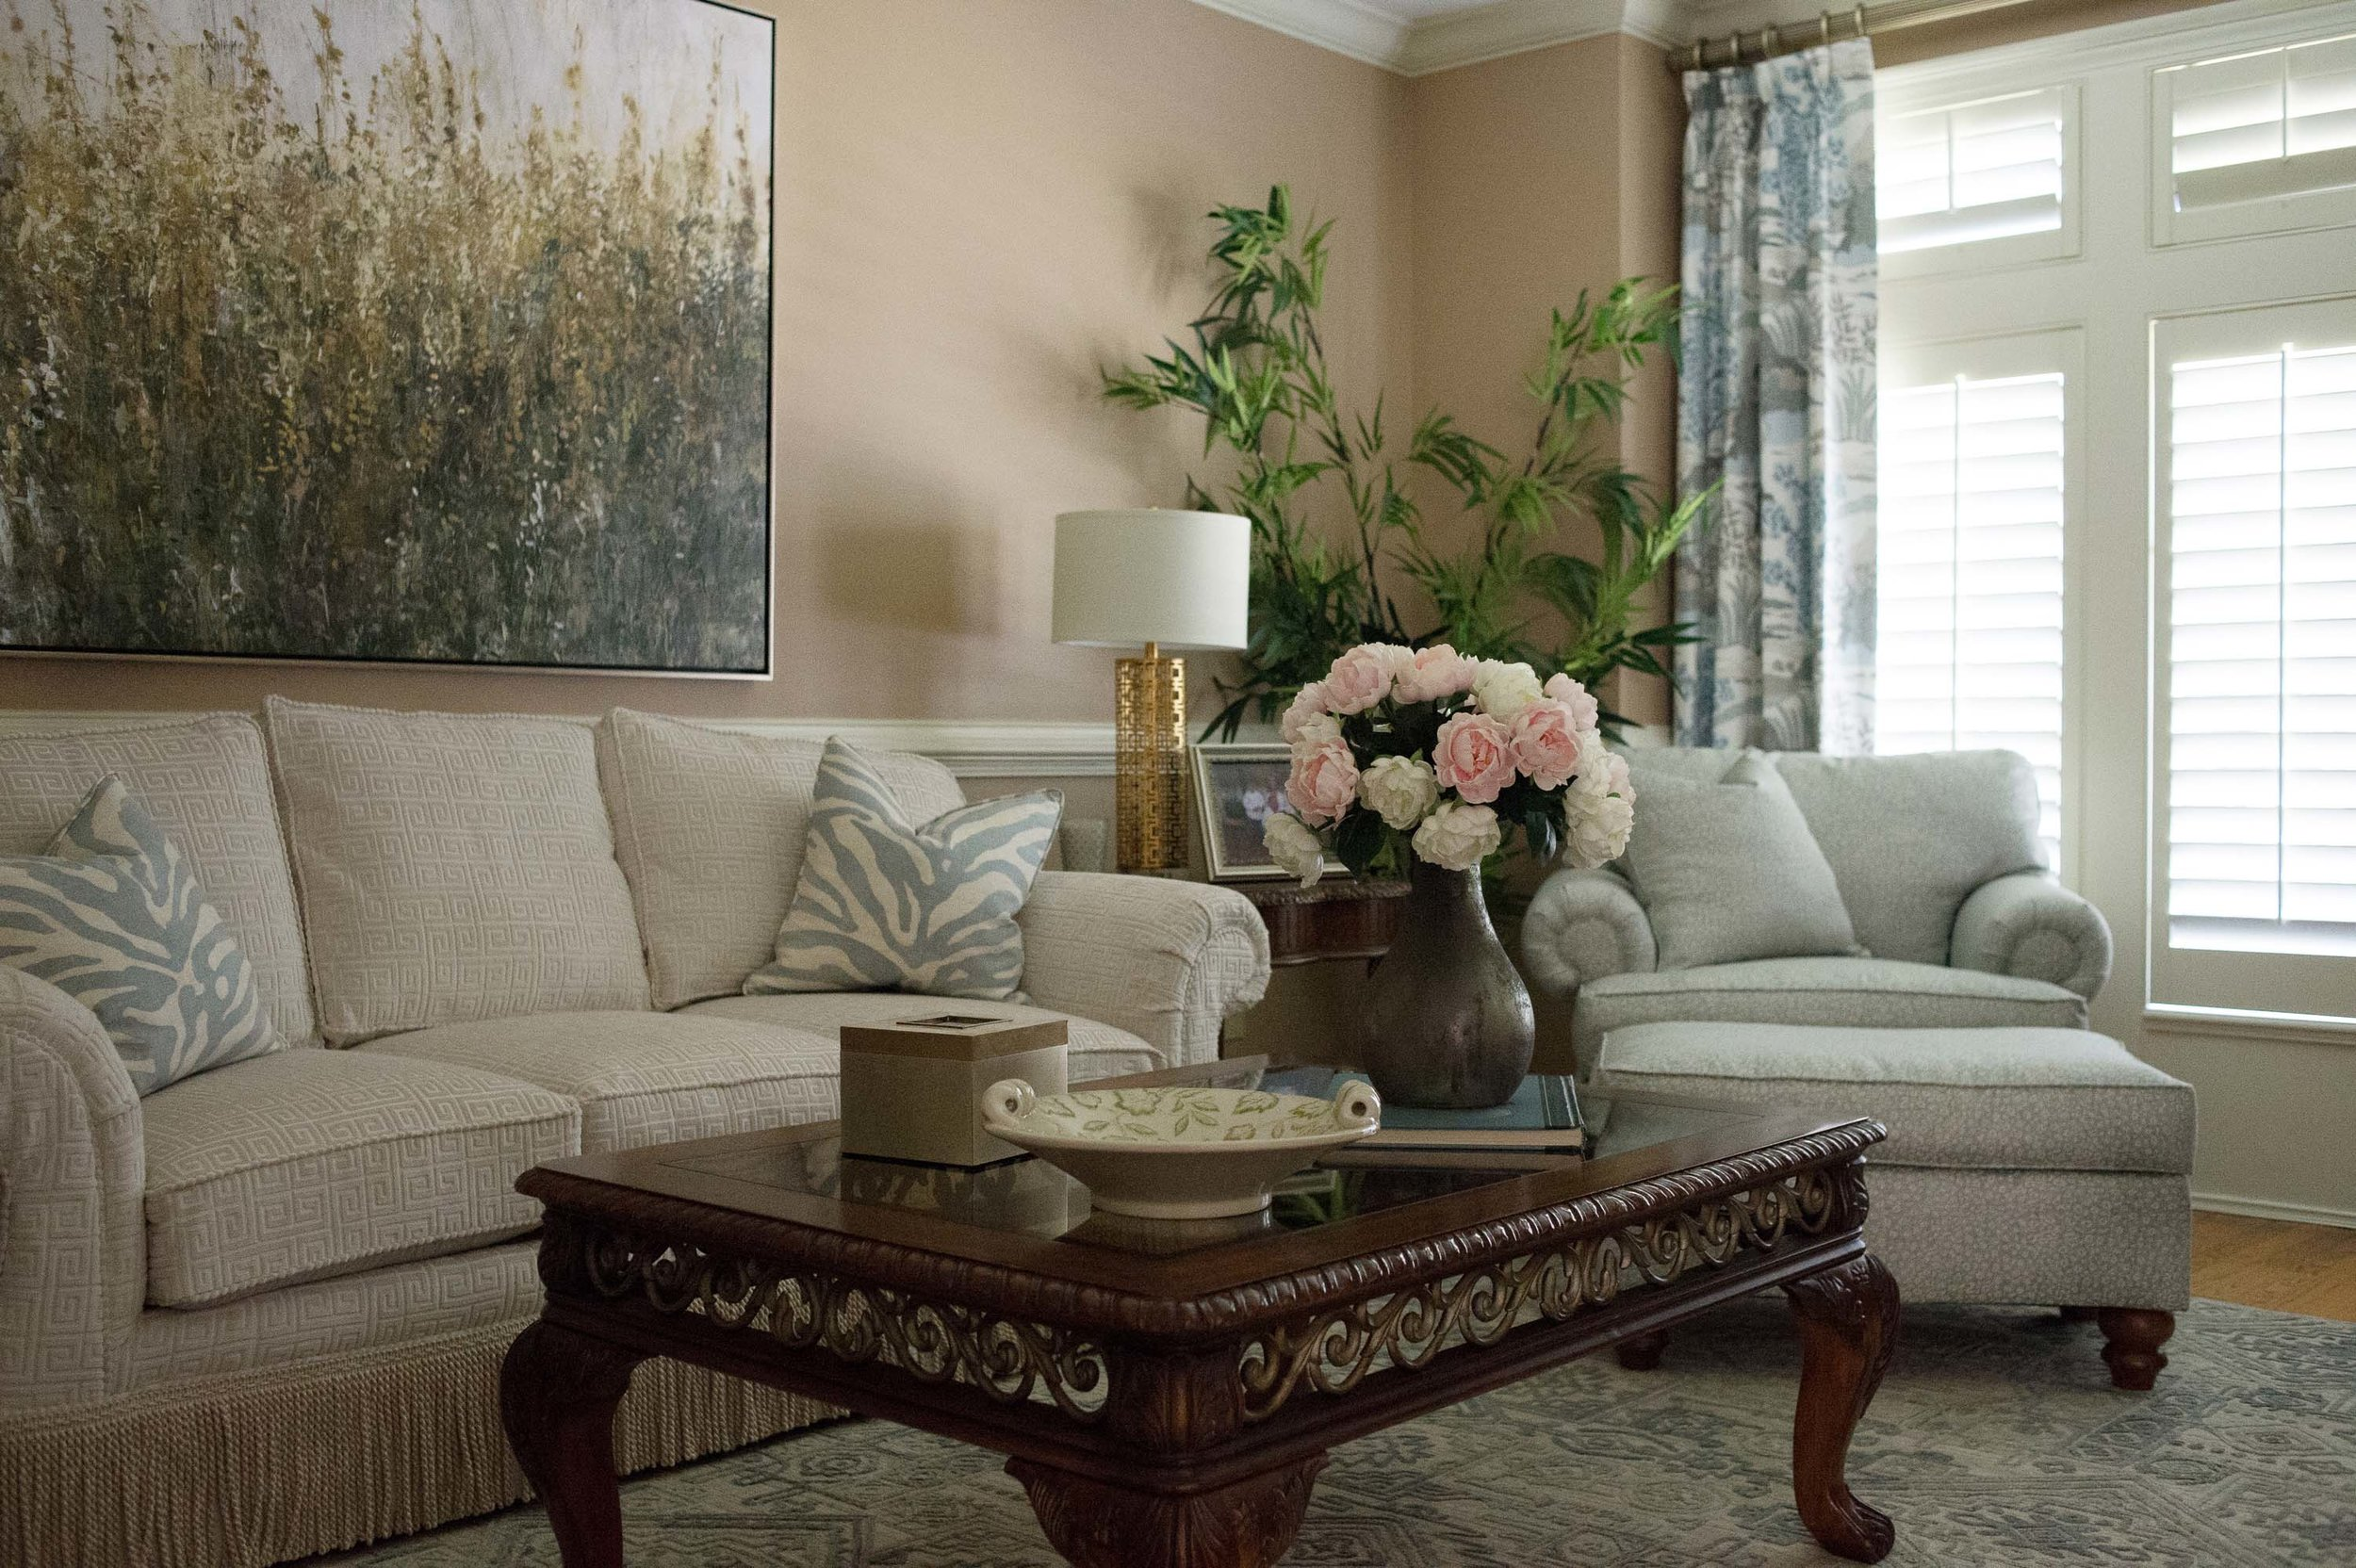 Living room with sofa, wooden center table, large frame on the wall and indoor plant